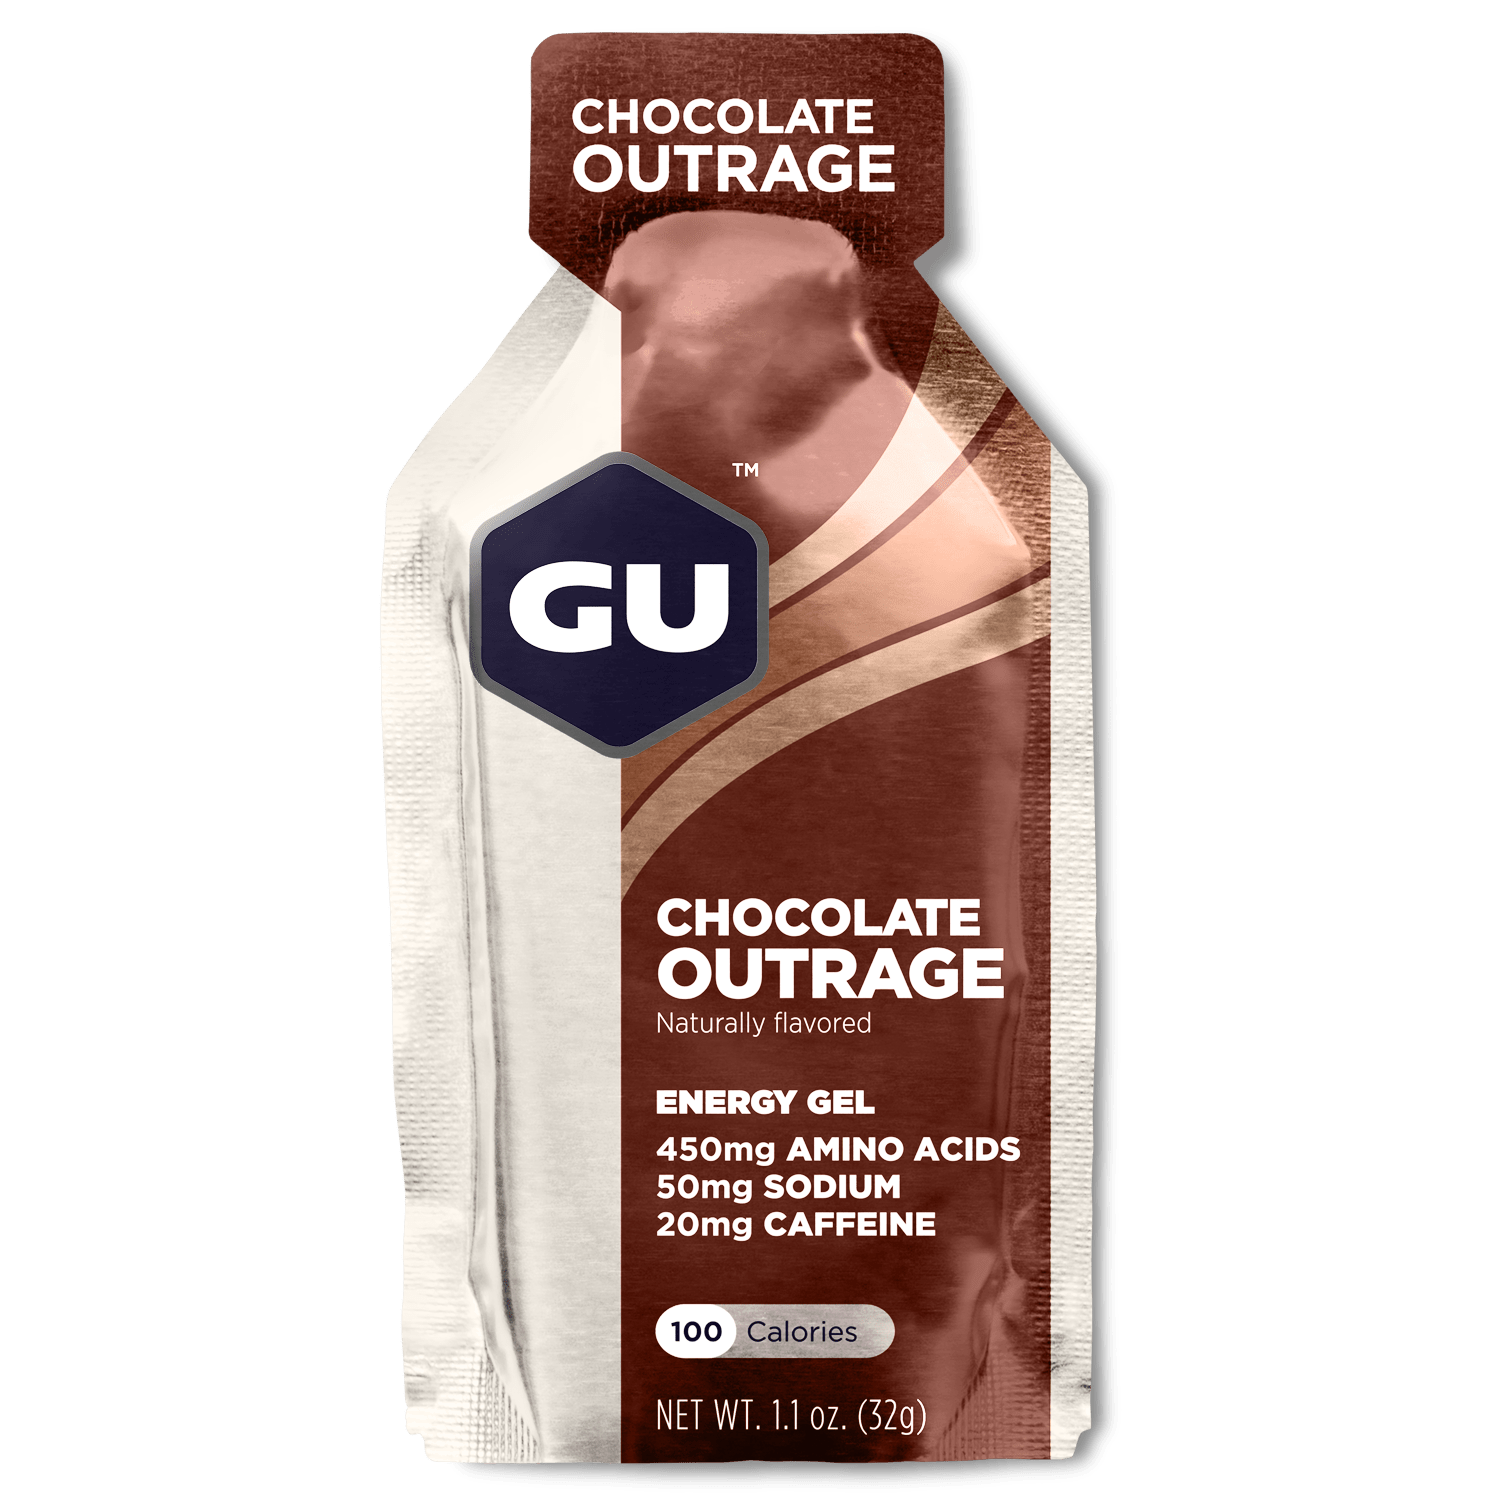 GU Sports Nutrition Chocolate Outrage / 24 Count Box GU Original Sports Nutrition Energy Gel - Various Flavors